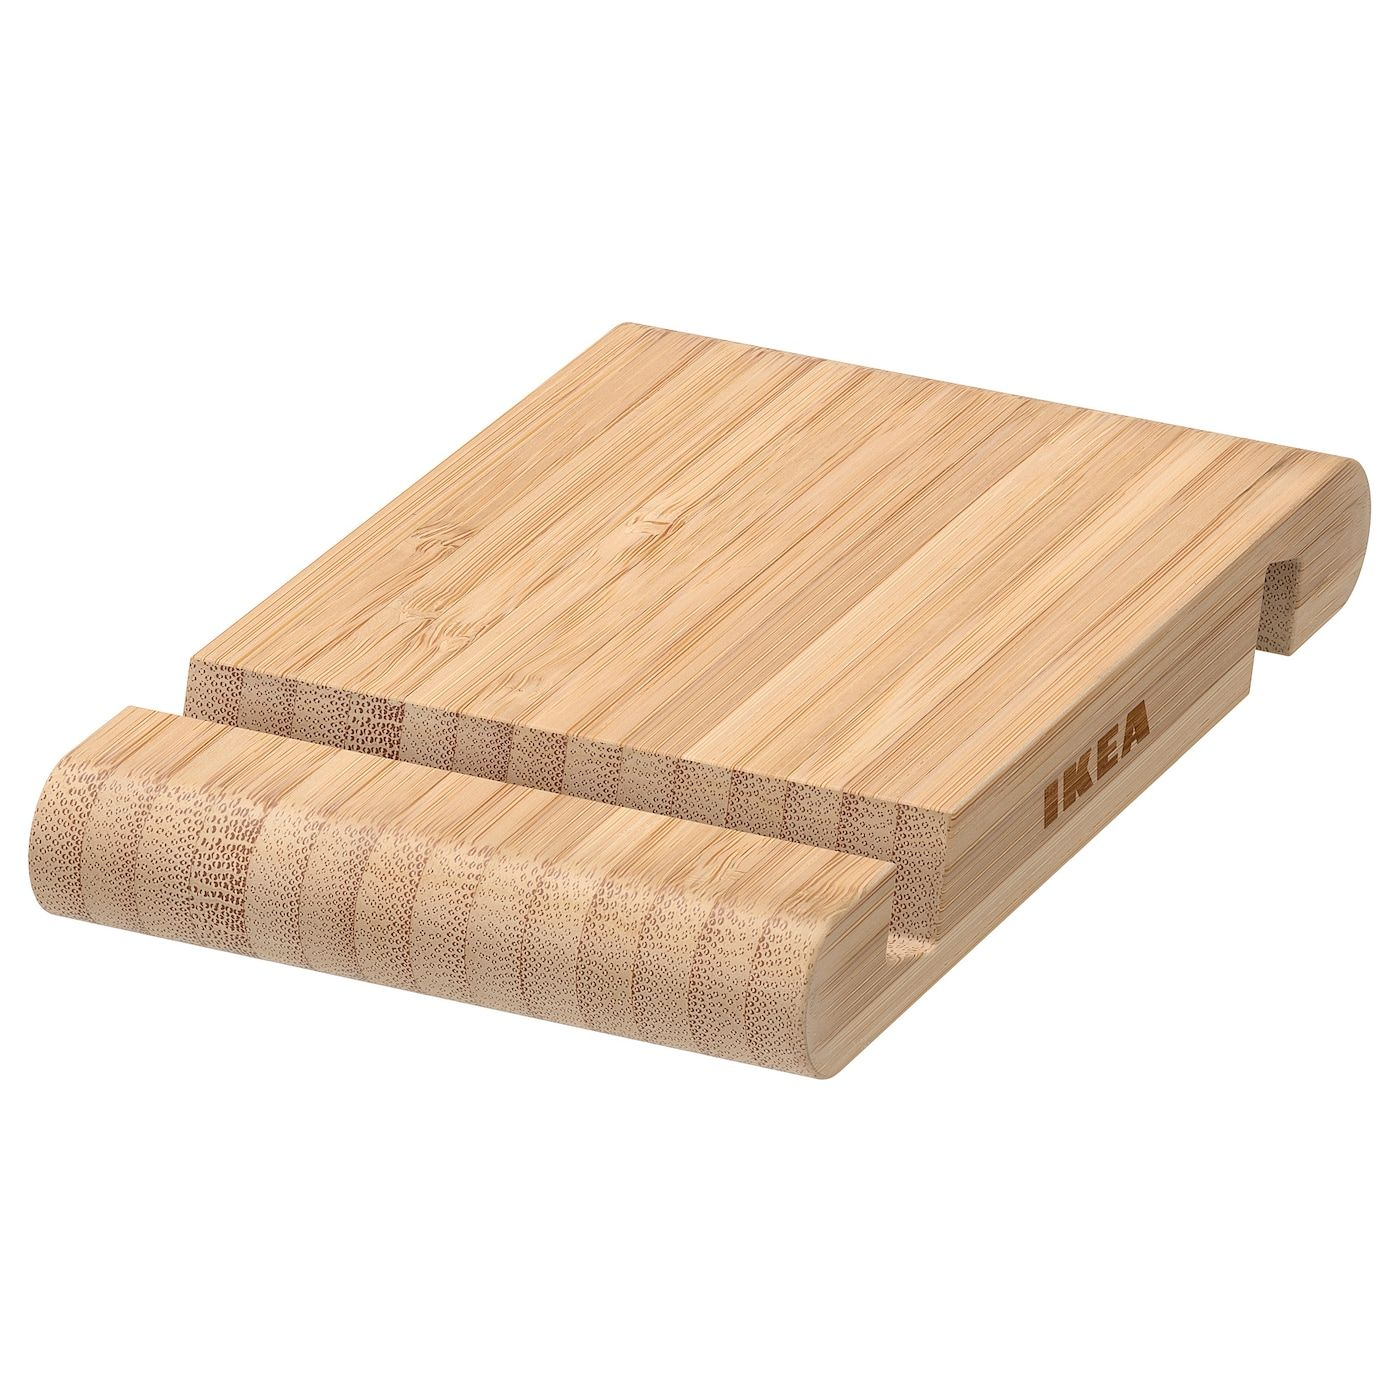 Bergenes Holder For Mobile Phone Tablet Bamboo Ikea In 2020 Desk Paper Organizer Ikea Small Storage